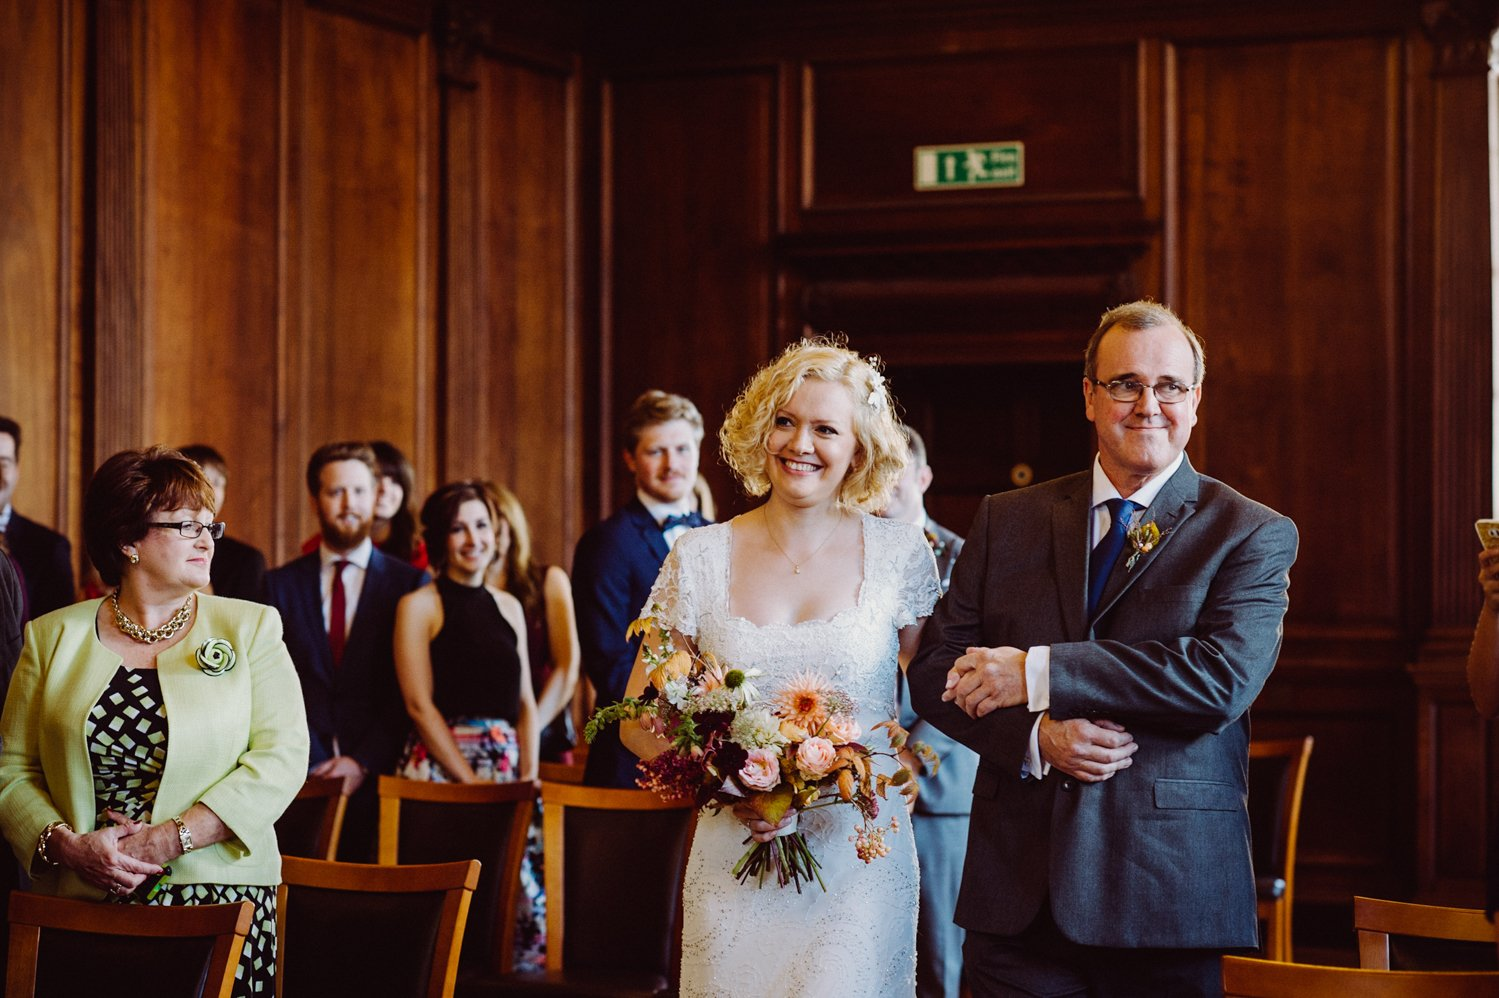 Phase Eight bride walks the aisle with Father Scotland wedding